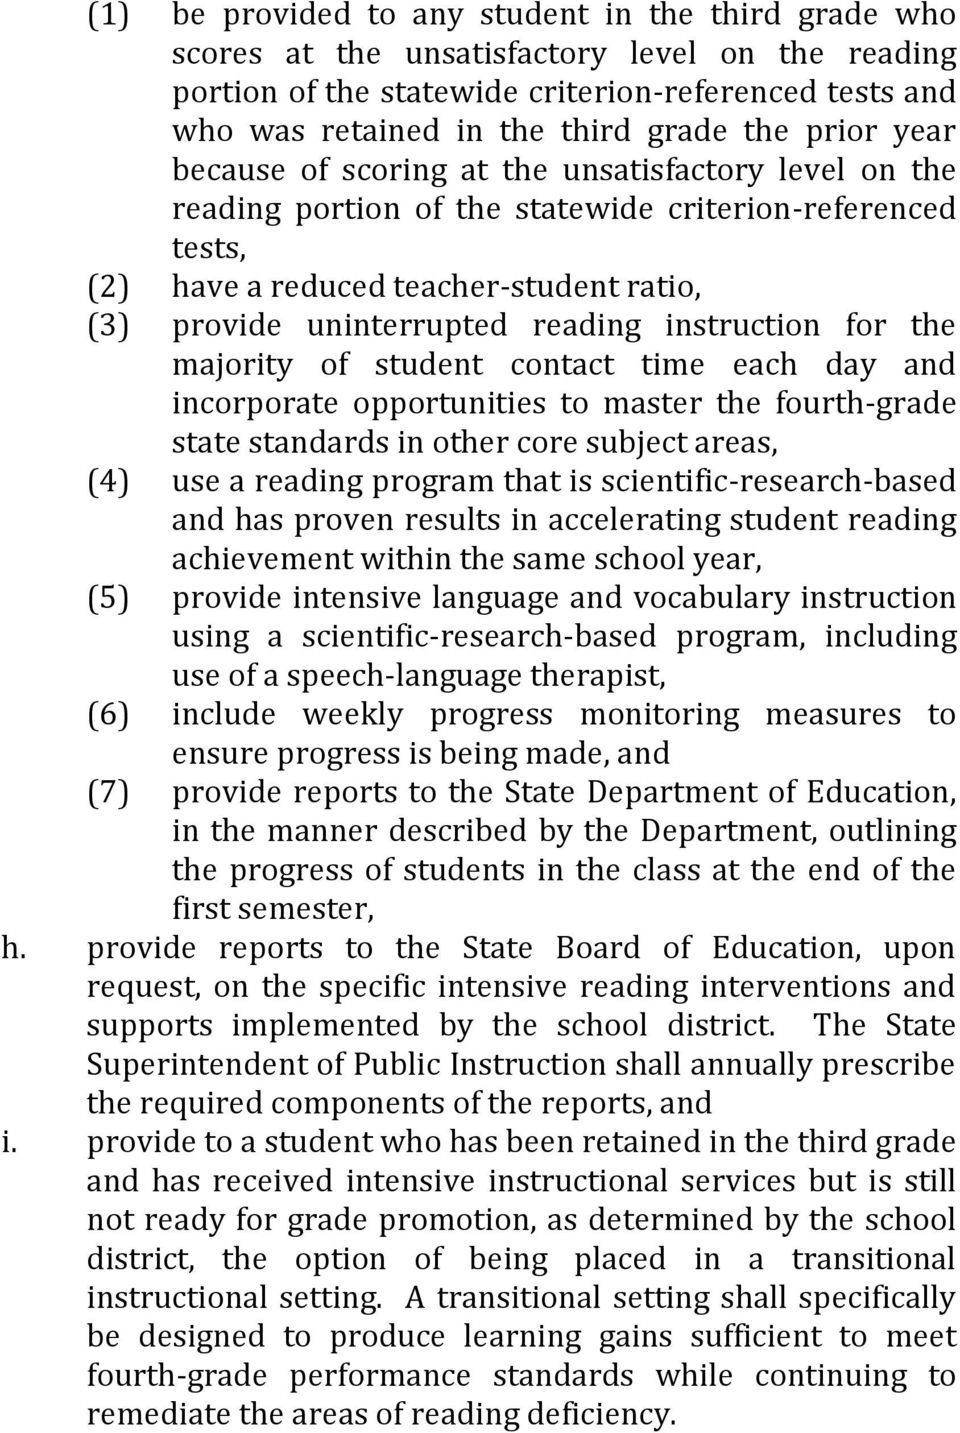 reading instruction for the majority of student contact time each day and incorporate opportunities to master the fourth-grade state standards in other core subject areas, (4) use a reading program